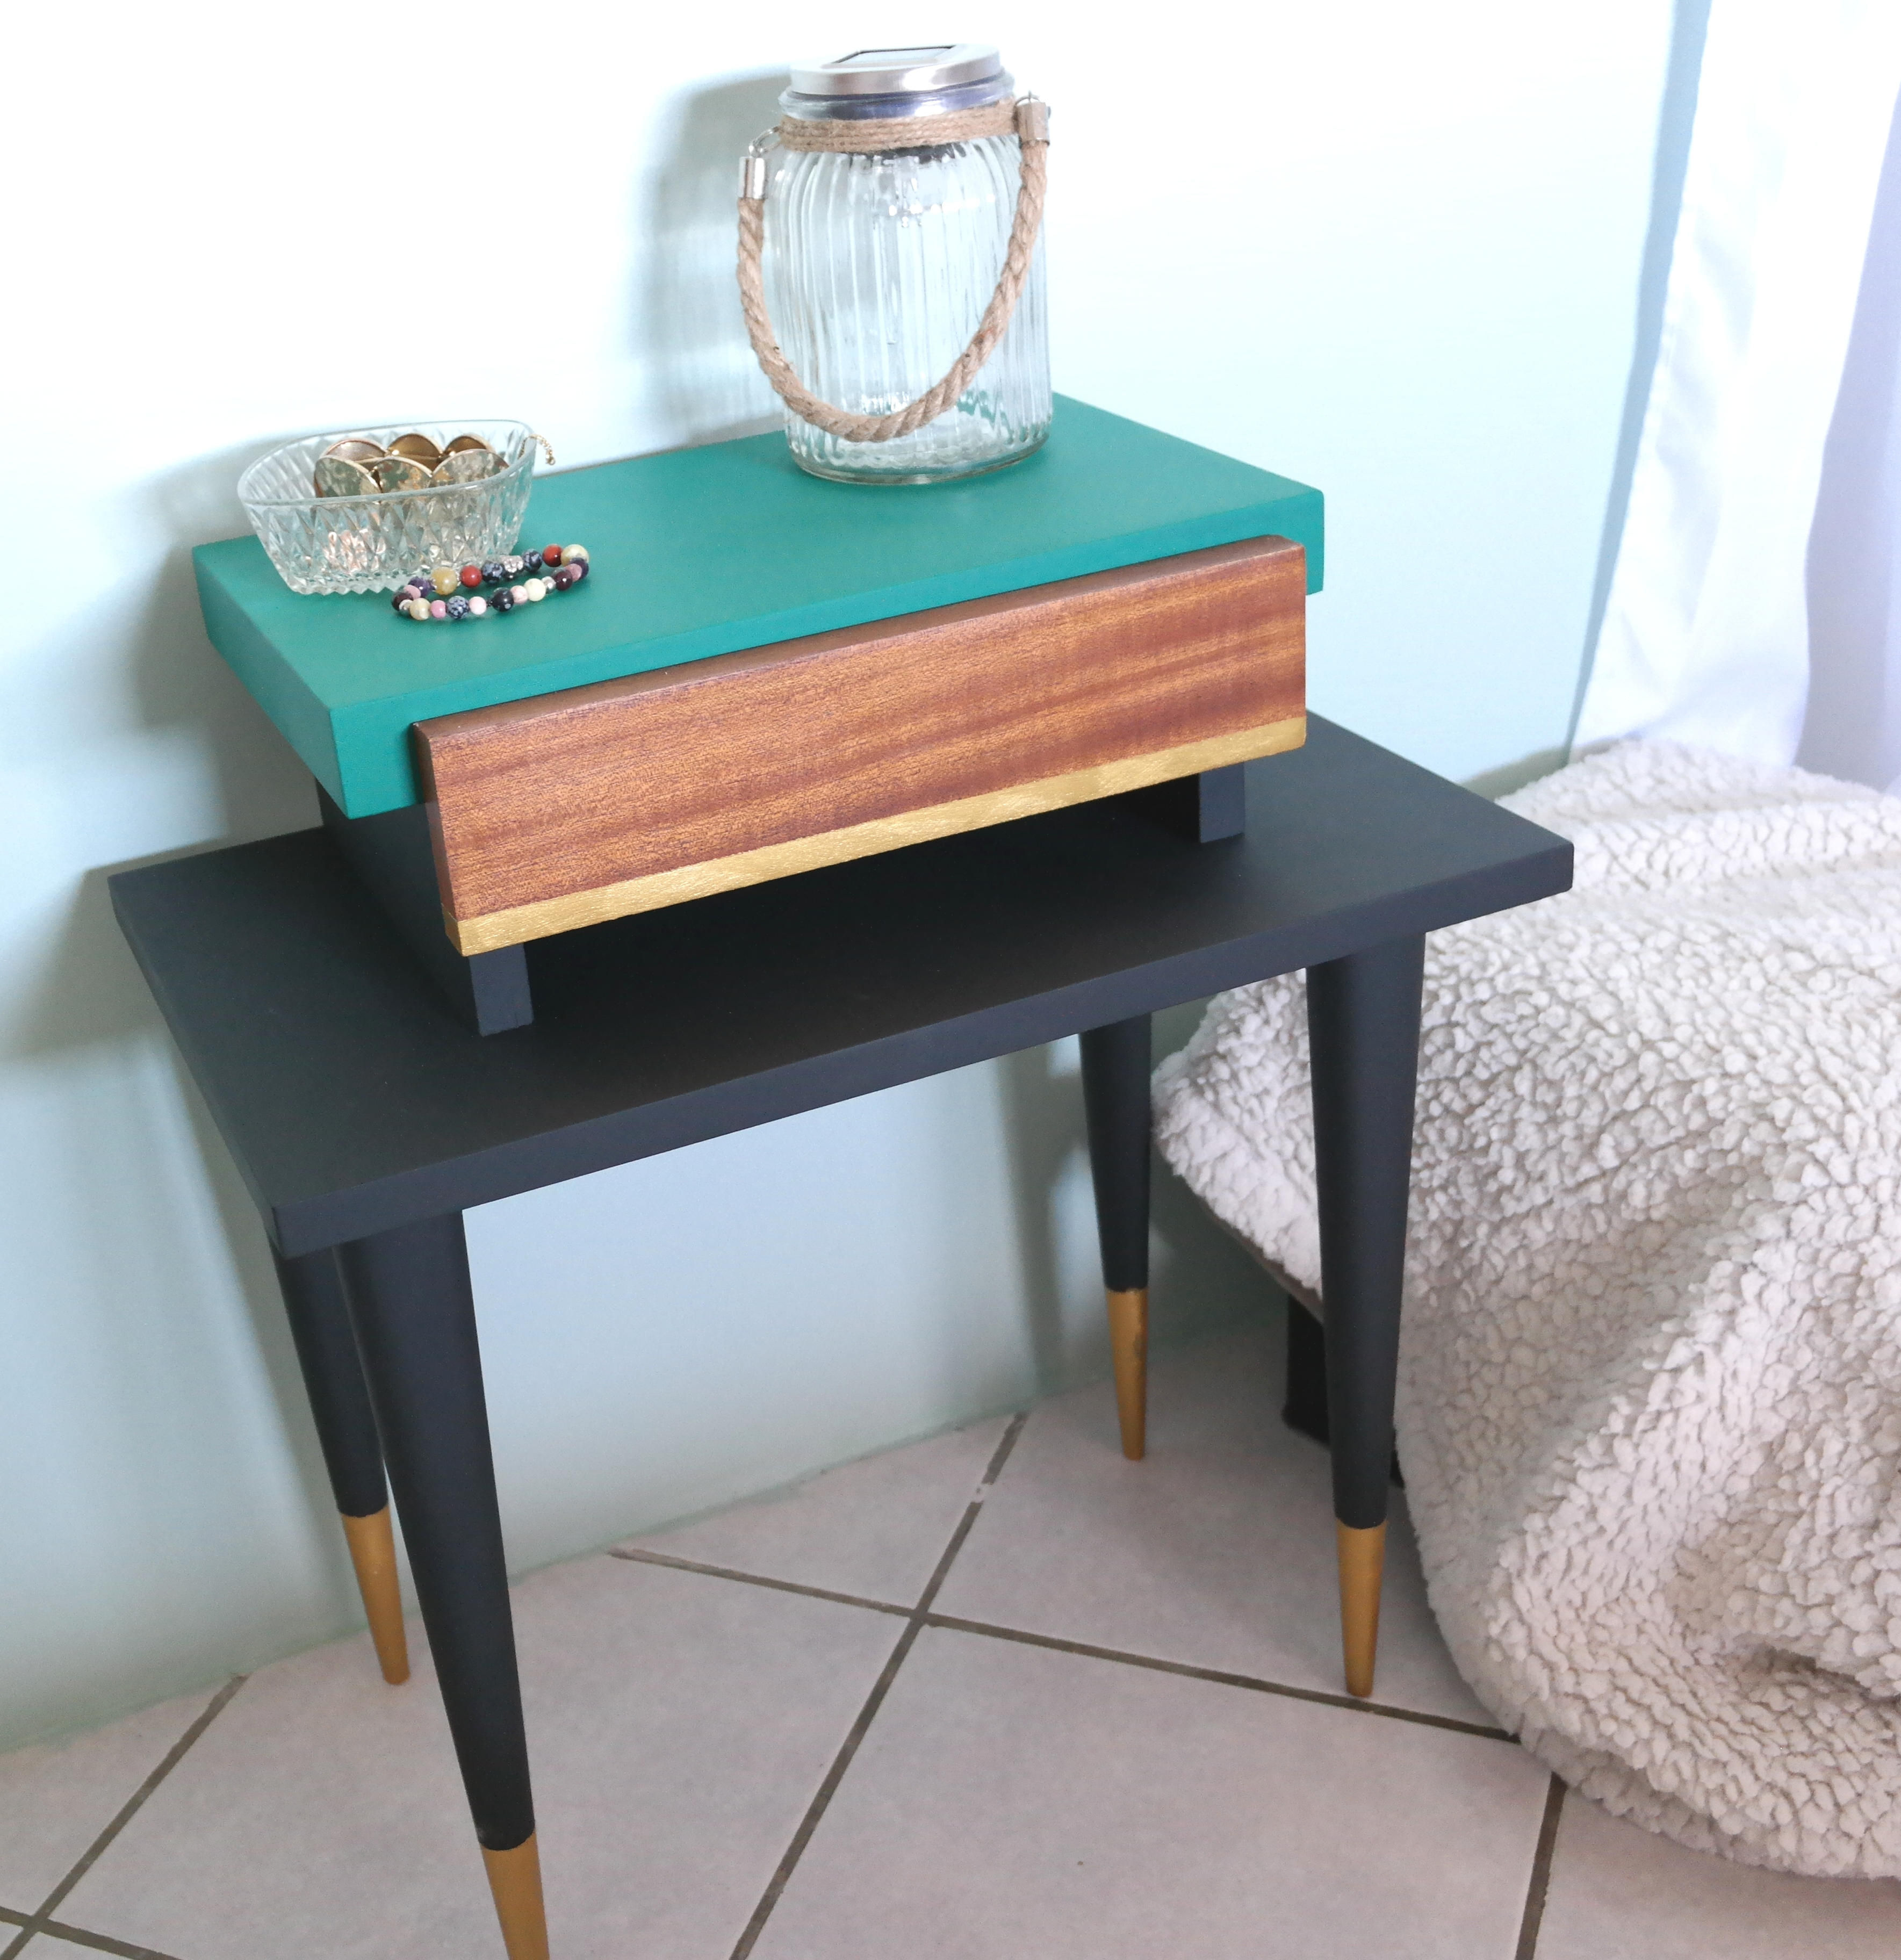 table-de-chevet-vintage-renovation-relooking-meuble-pebeo-decocreme